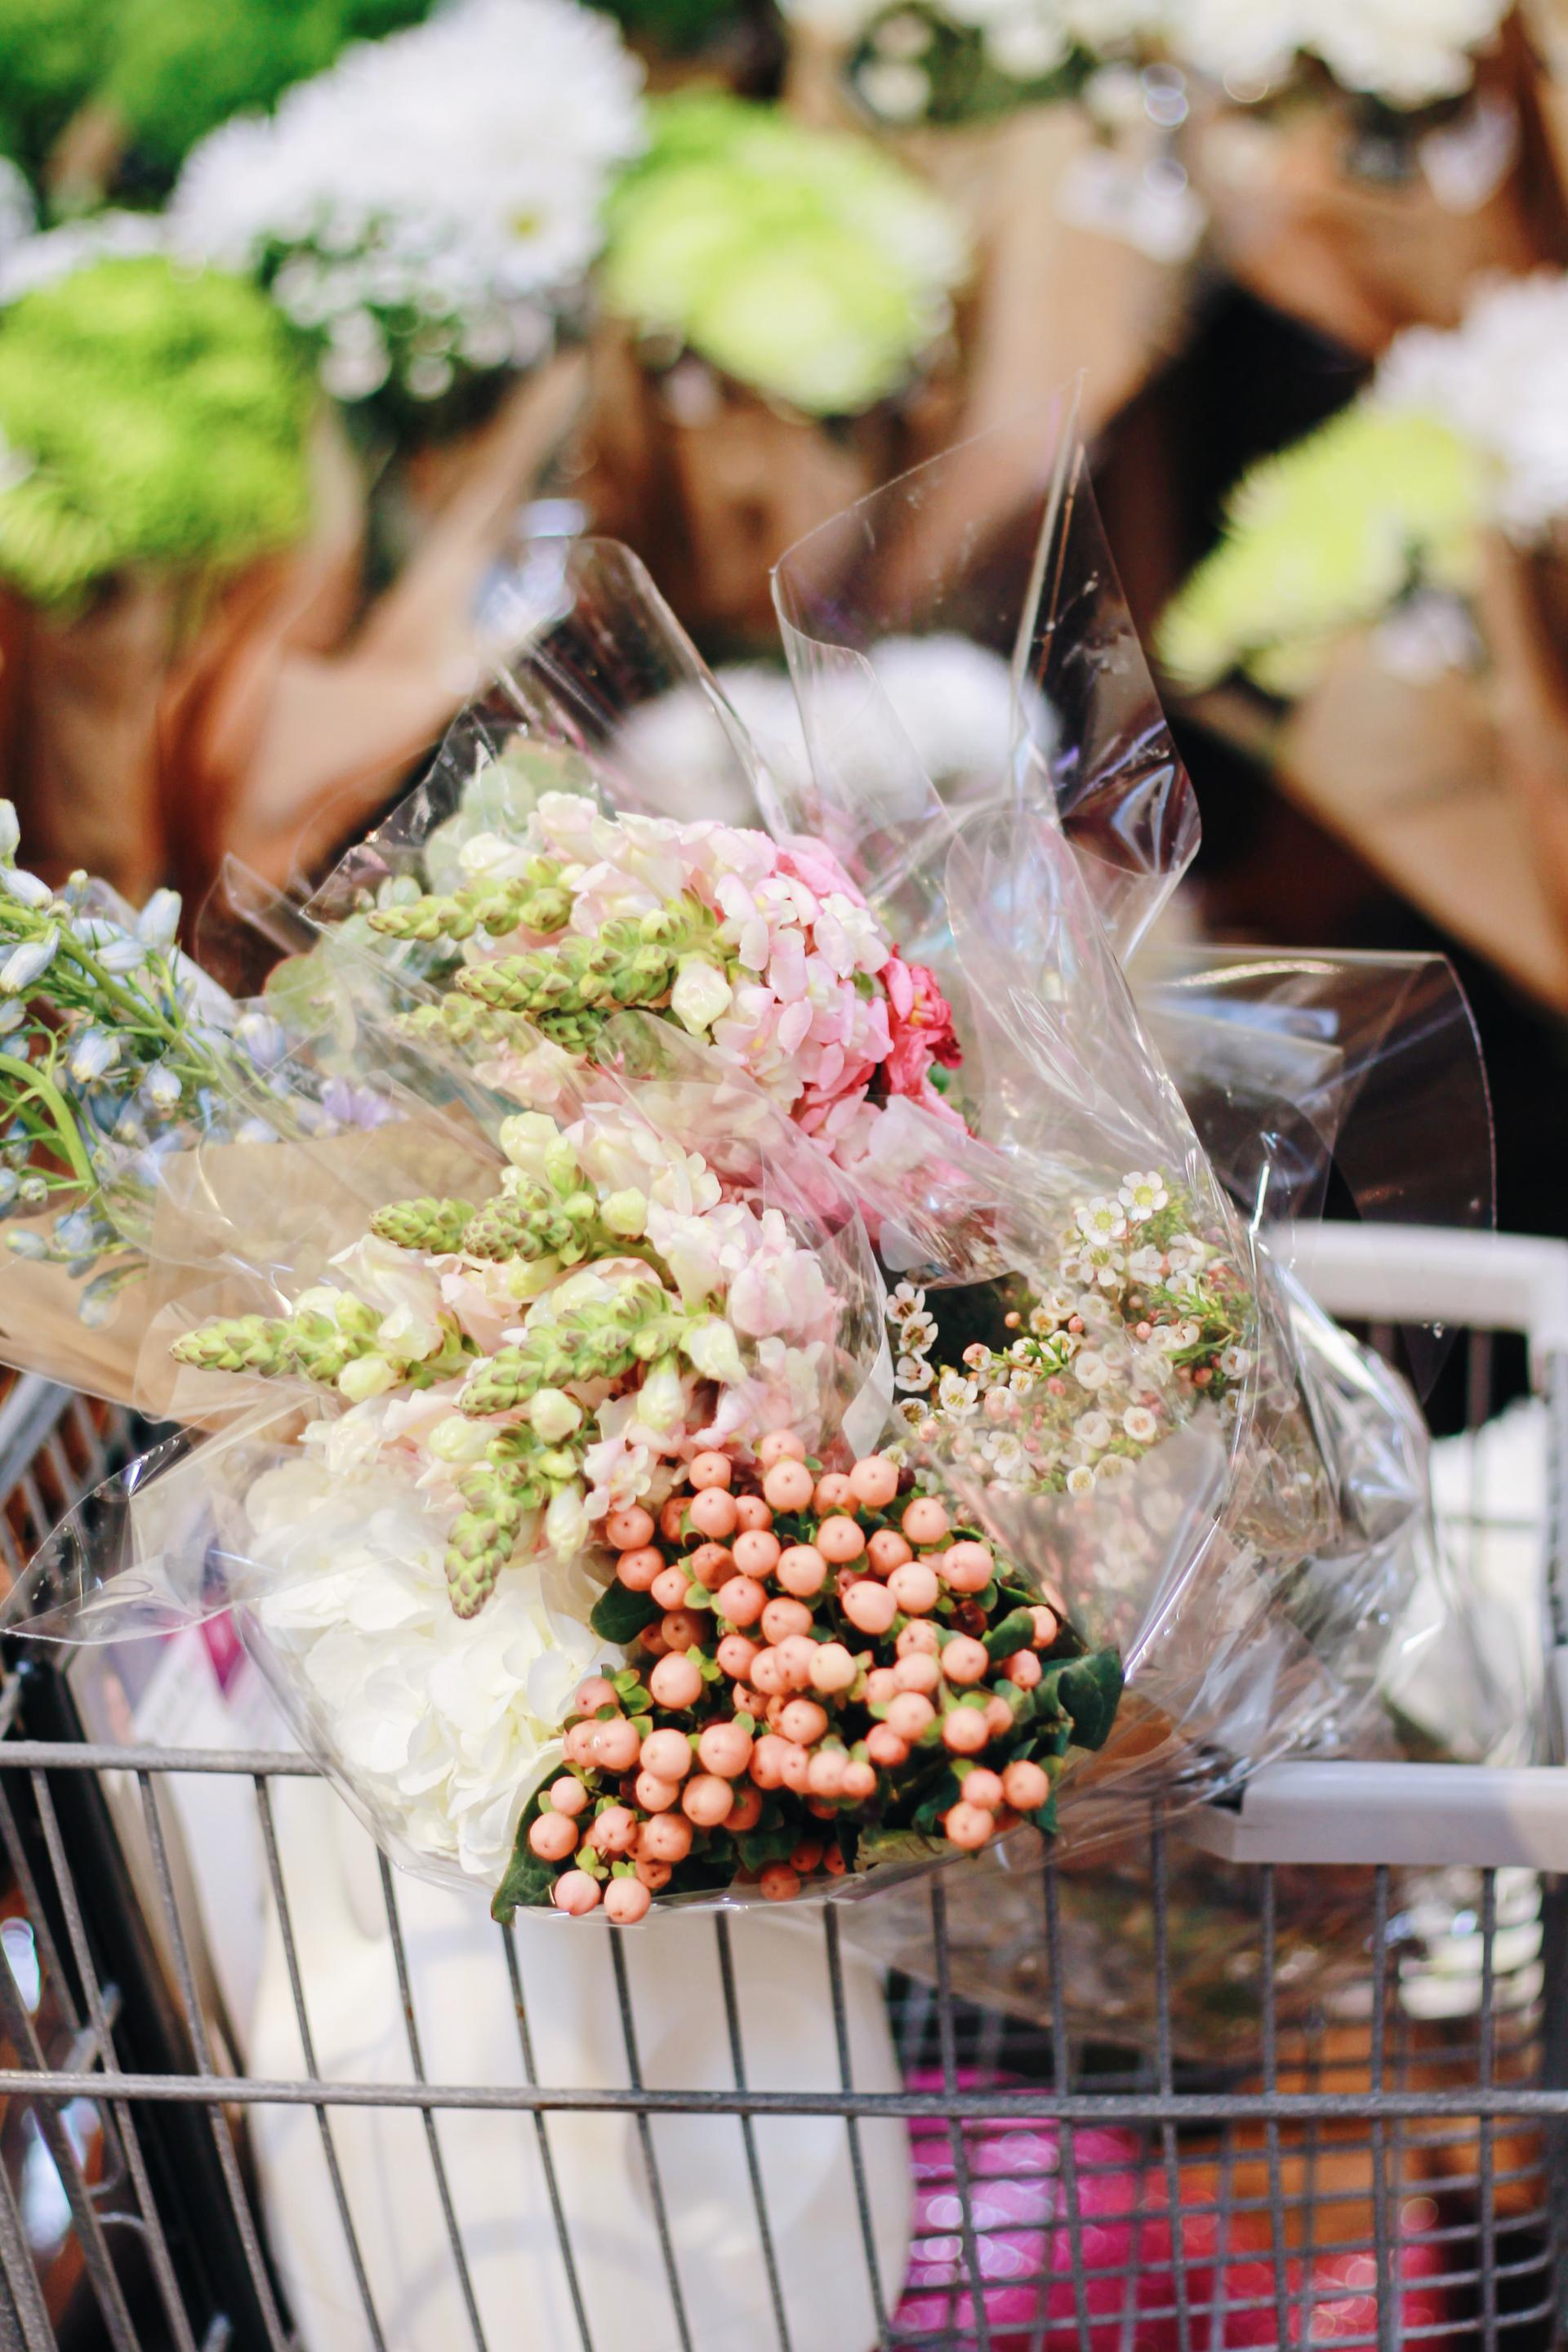 Make Your Own Bridal Bouquet: How To Make Your Own Wedding Bouquets